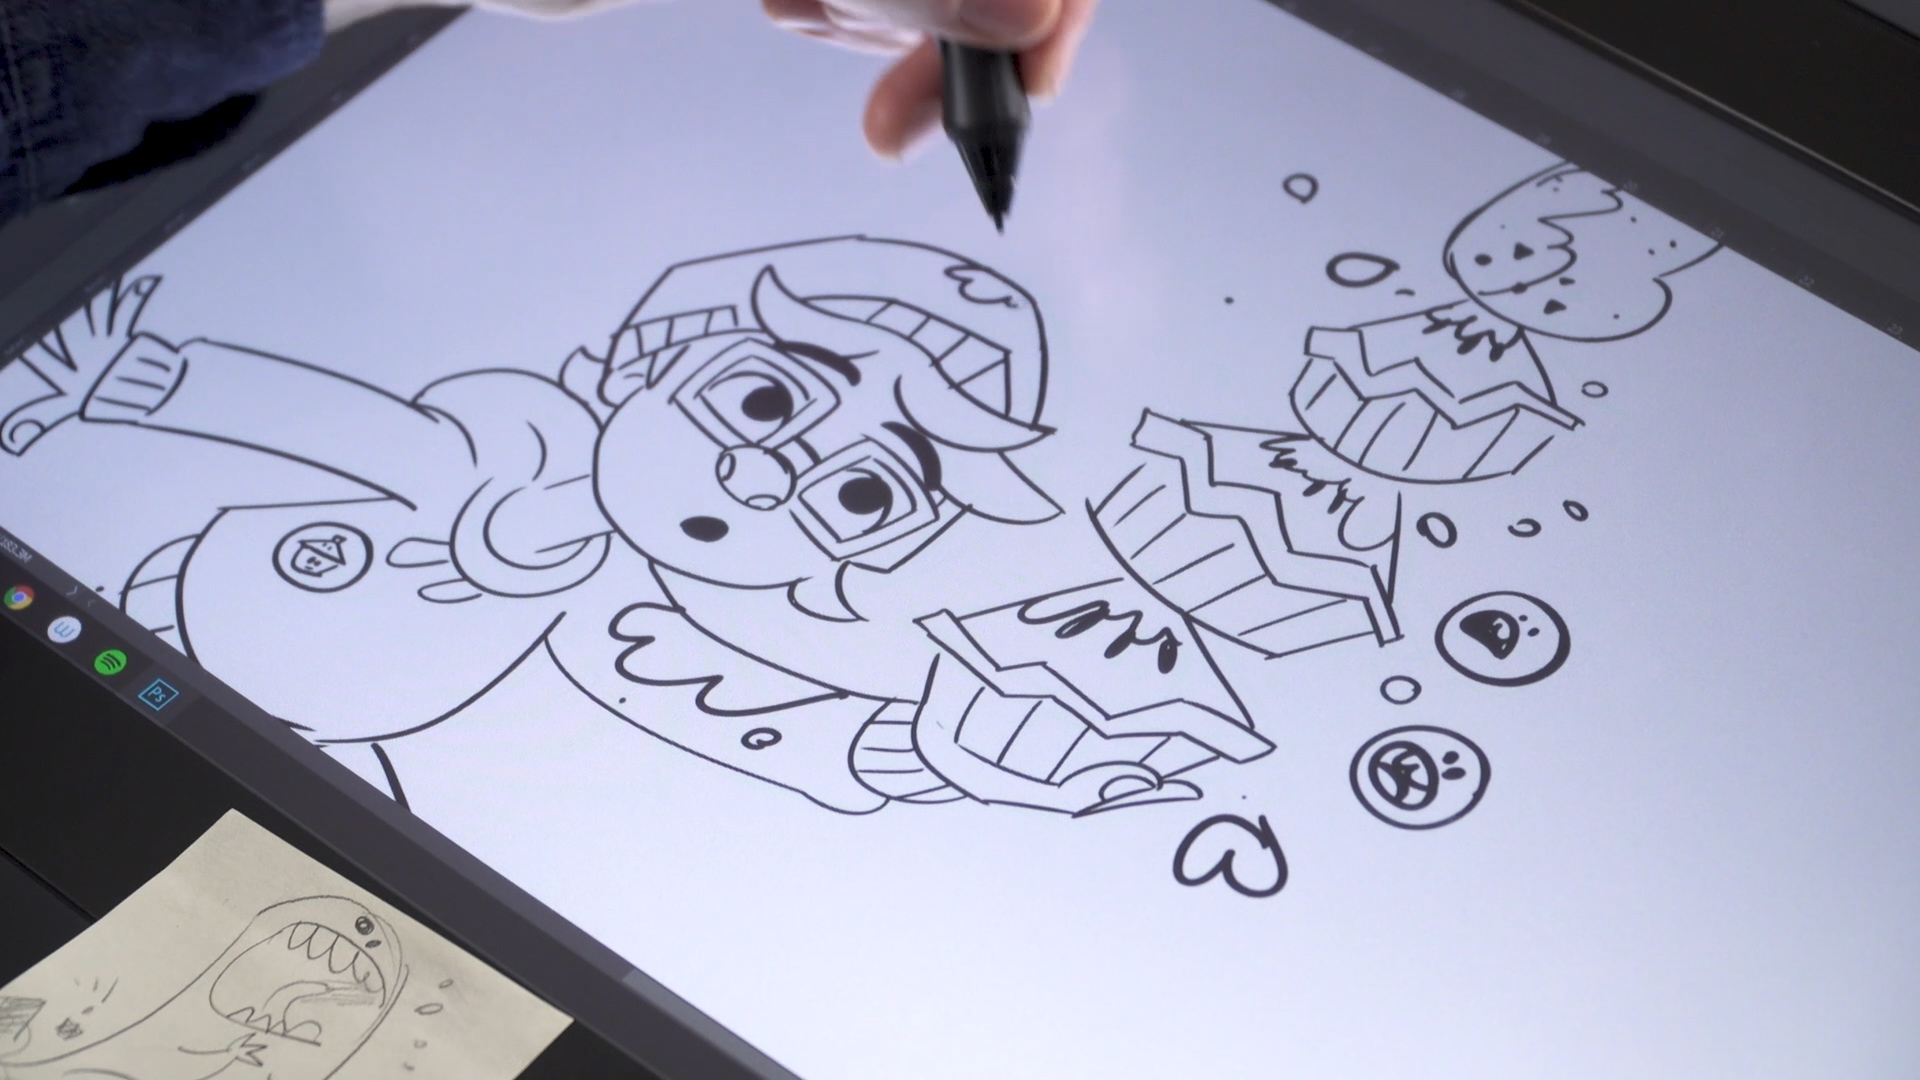 Ross adding touches to his drawing of Pieface